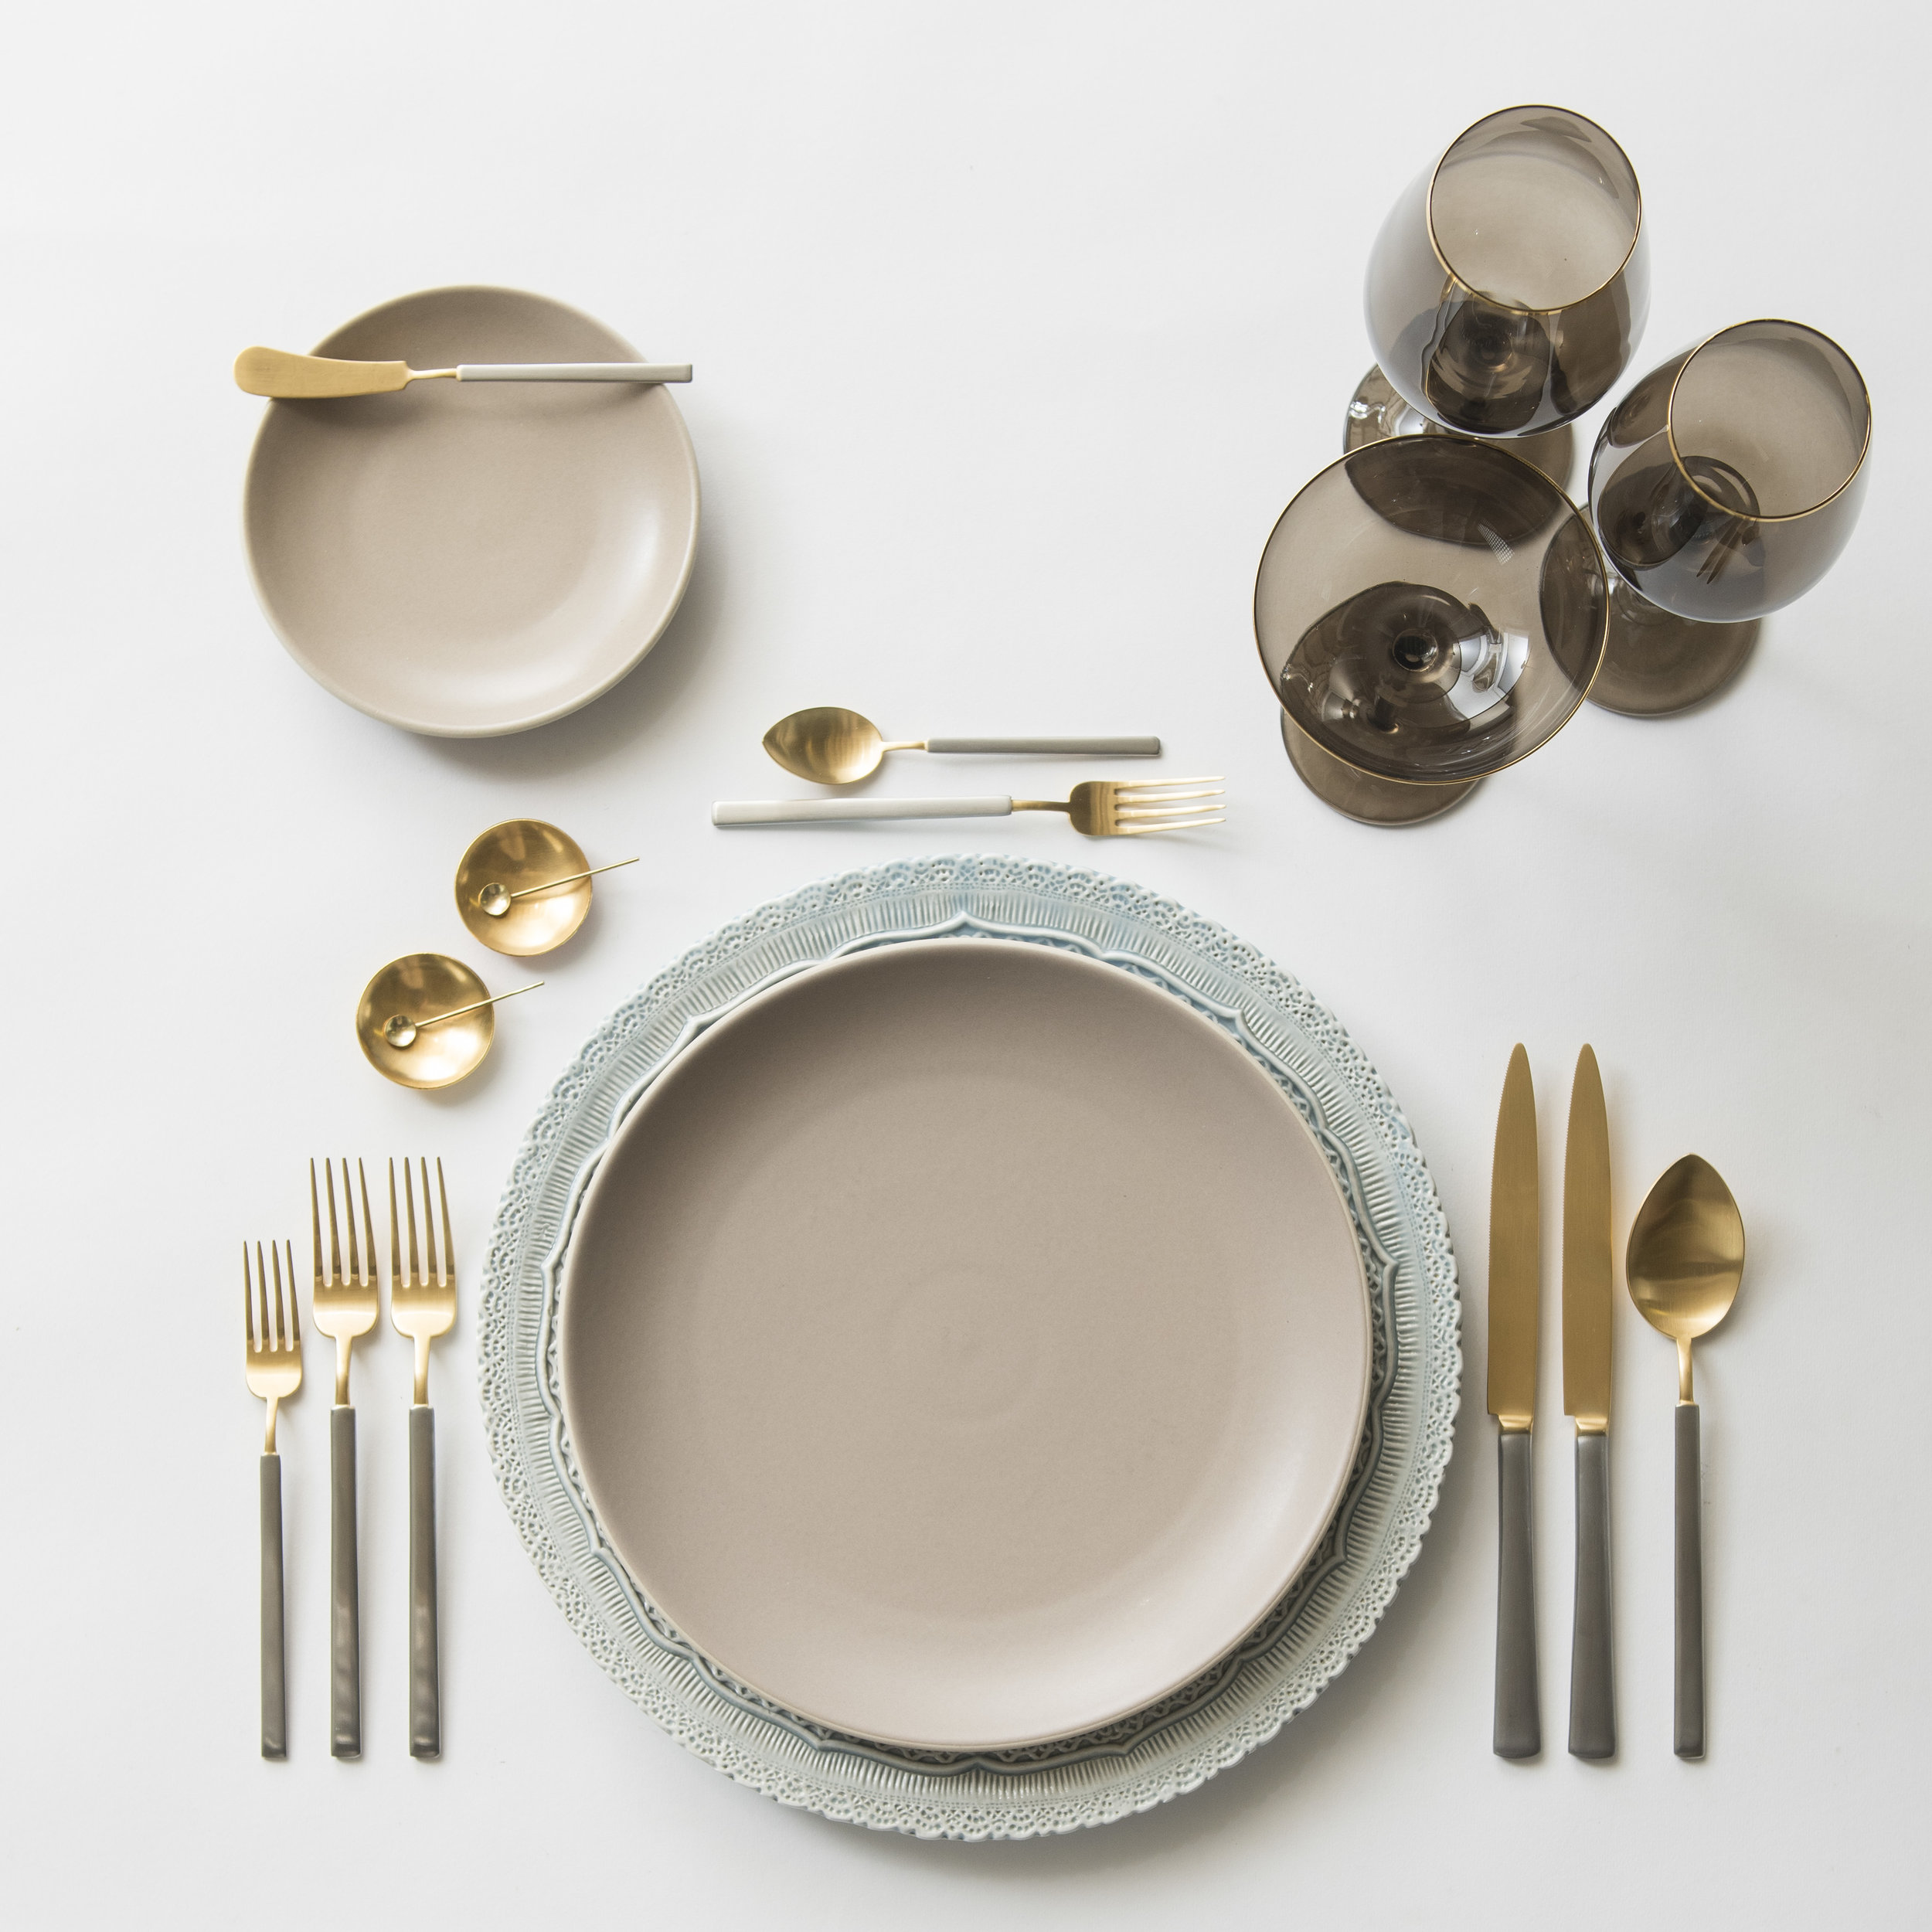 RENT: Lace Chargers in Dusty Blue + Heath Ceramics in French Grey + Axel Flatware in Matte 24k Gold/Silver + Bella 24k Gold Rimmed Stemware in Smoke + 14k Gold Salt Cellars + Tiny Gold Spoons  SHOP: Bella 24k Gold Rimmed Stemware in Smoke + 14k Gold Salt Cellars + Tiny Gold Spoons